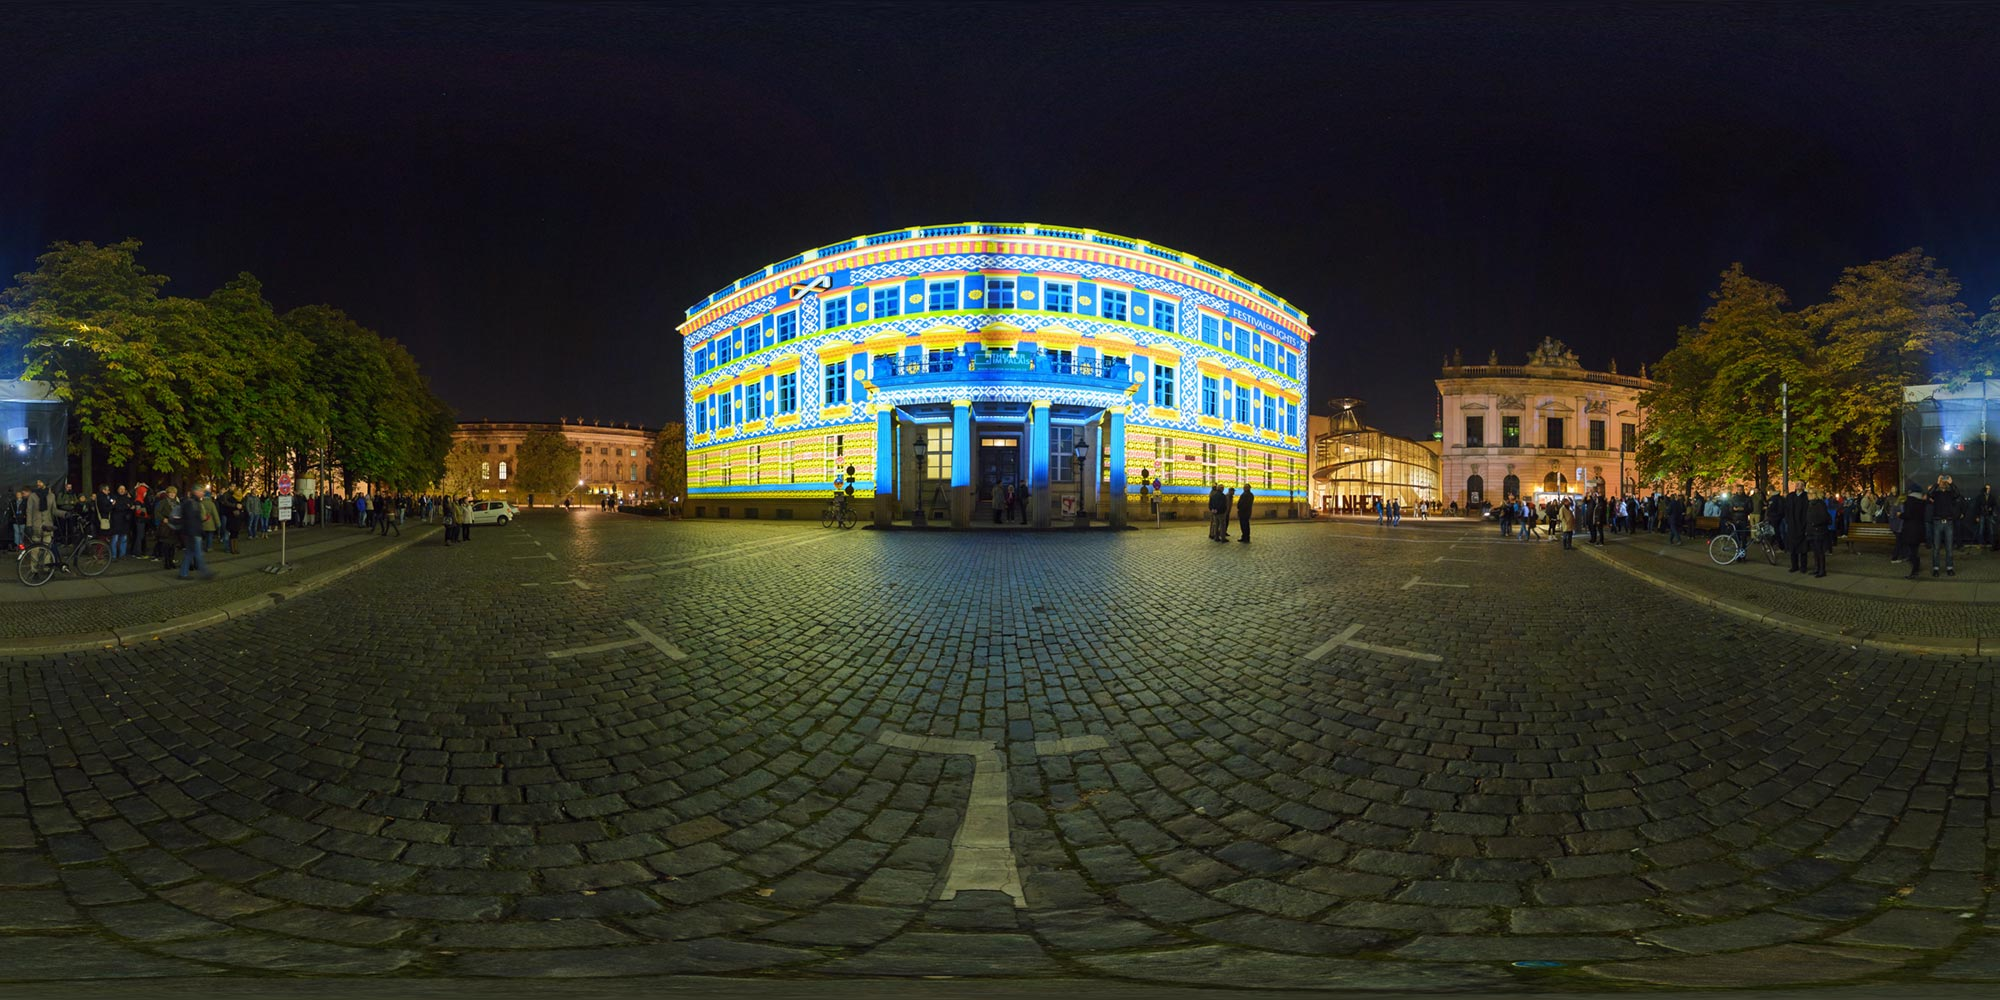 Panorama Berlin Festival of Lights - FOL 2015 Palais am Festungsgraben